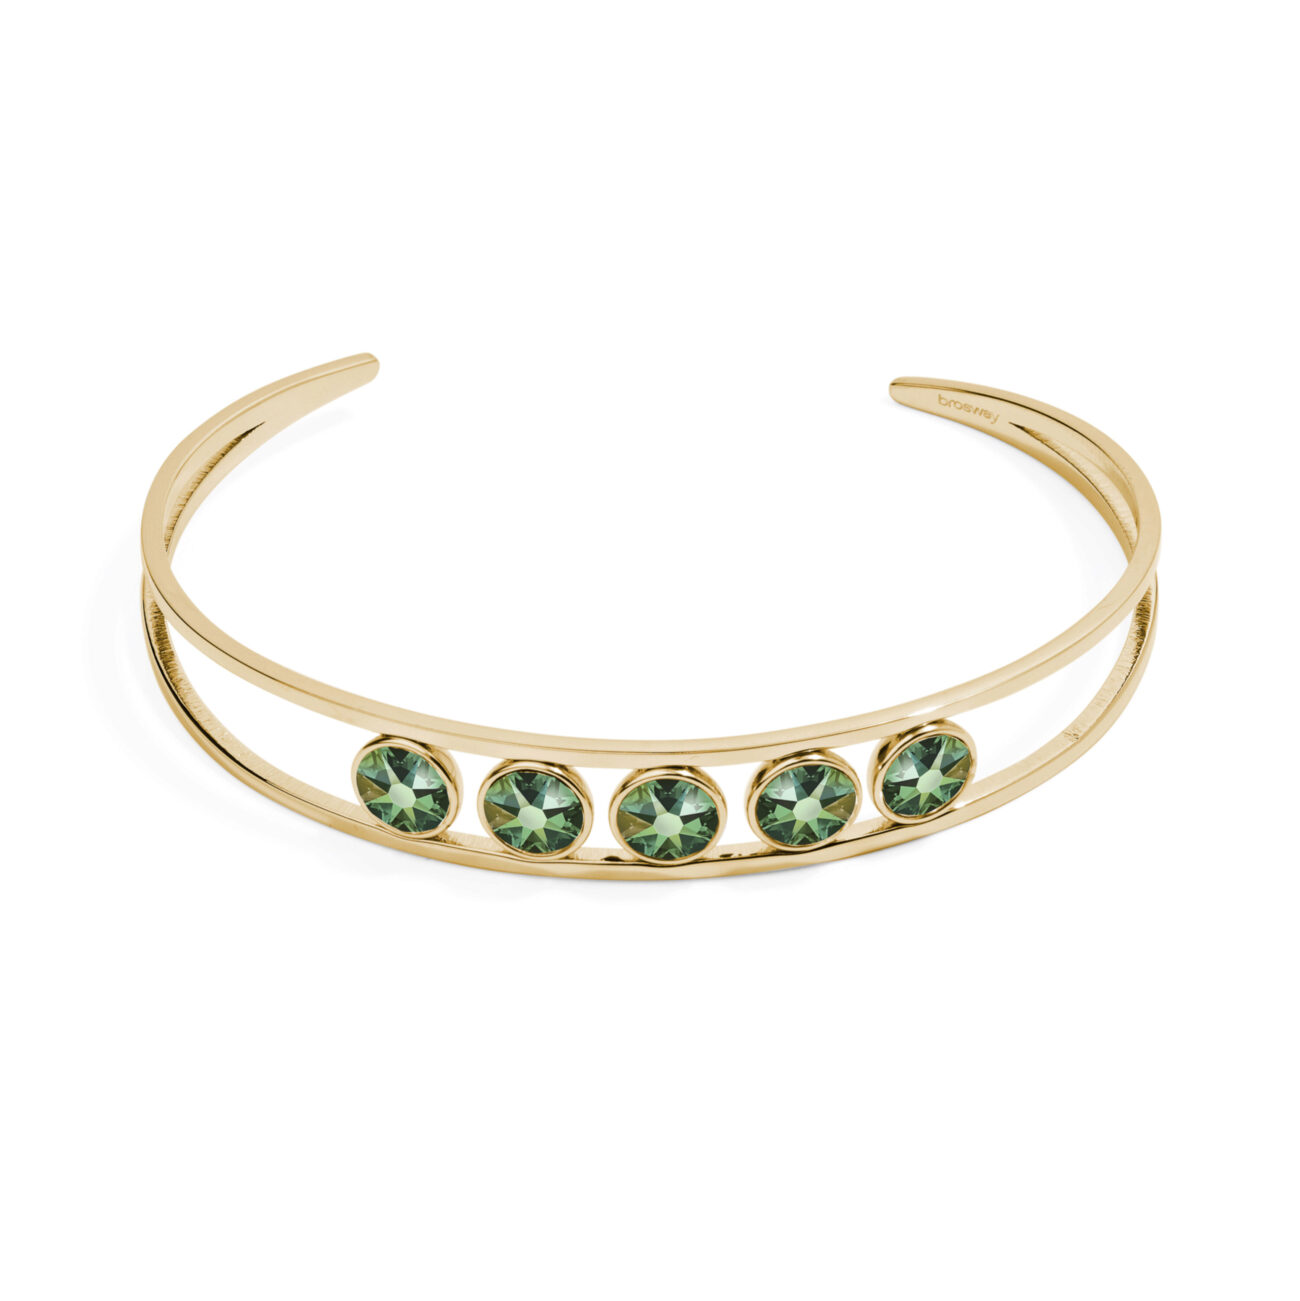 316L stainless steel bracelet and gold pvd with emerald moonlight crystals.